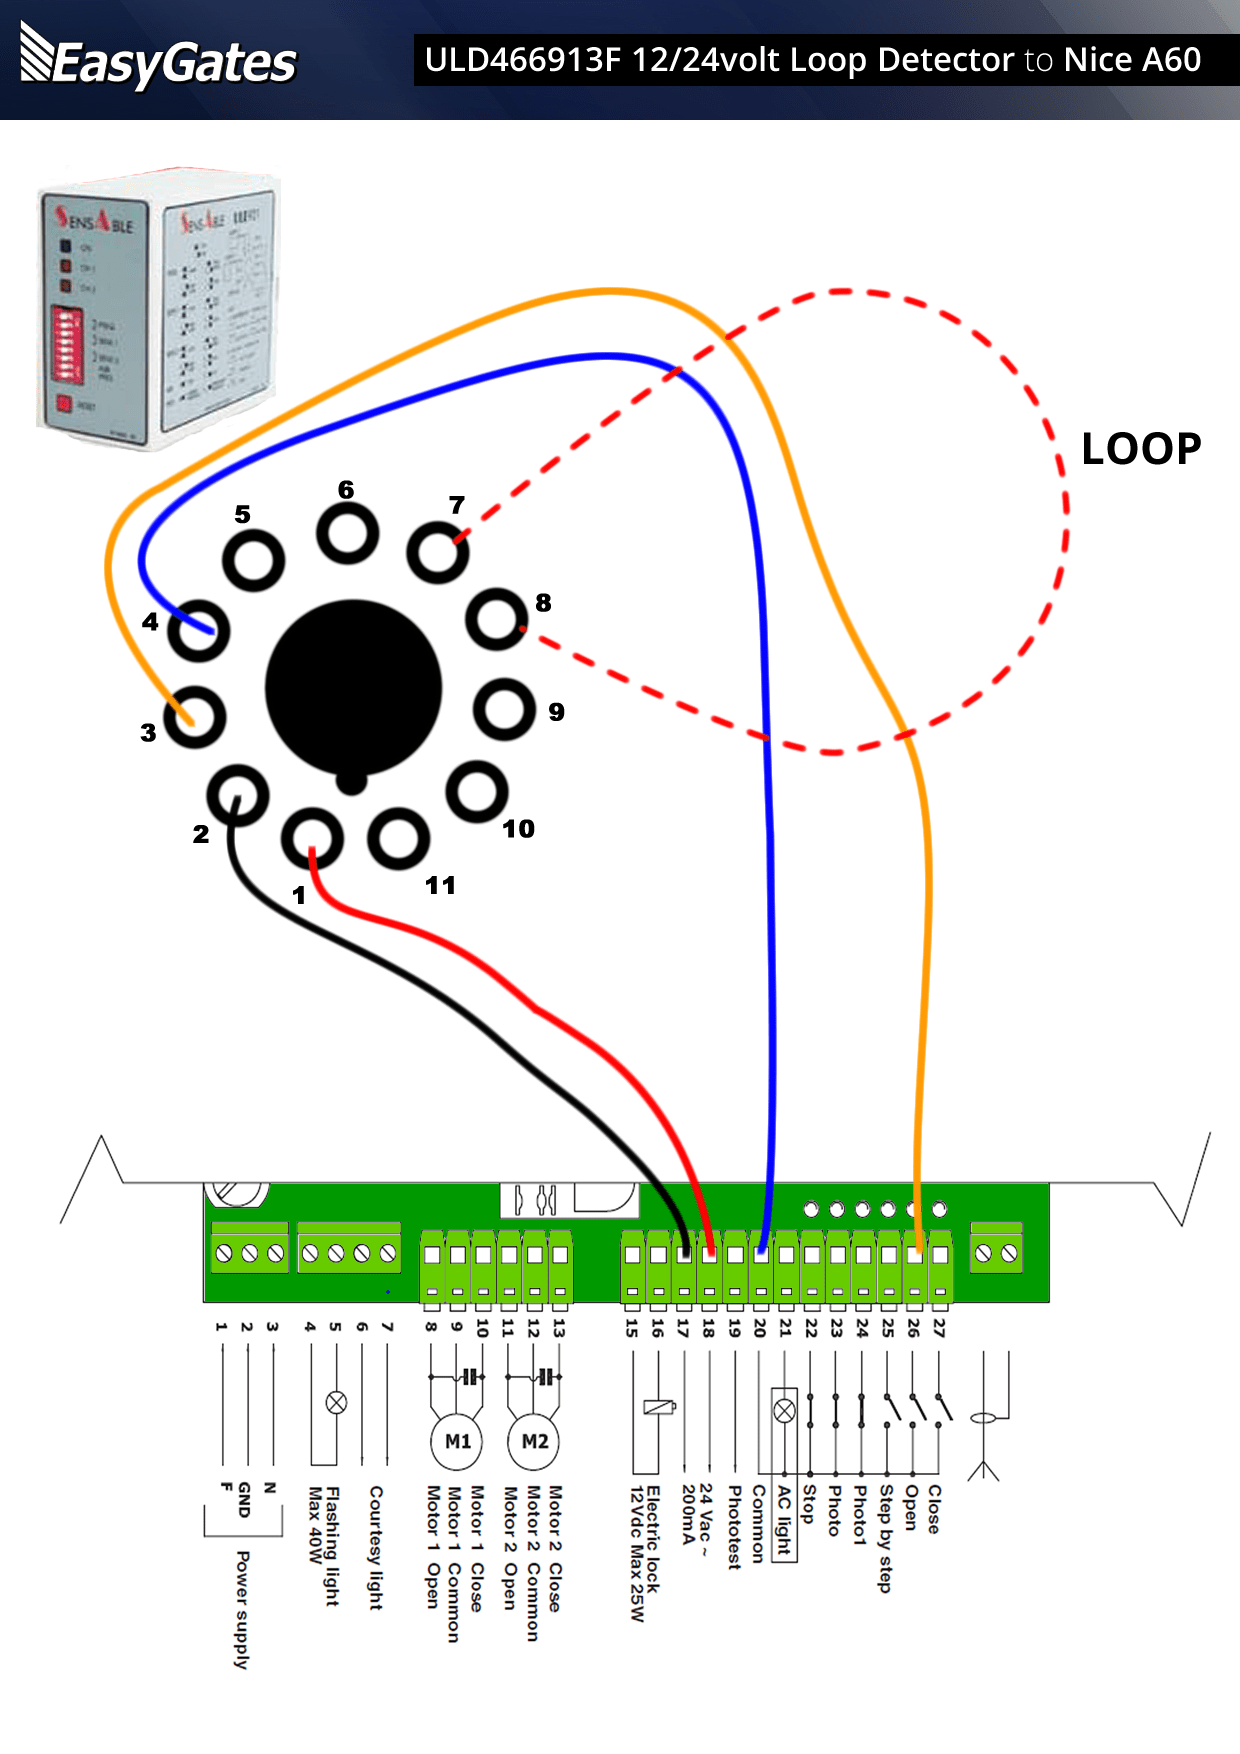 smoke alarm wiring diagram australia 95 s10 alternator loop detector toyskids co 12 24 volt to nice a60 control board